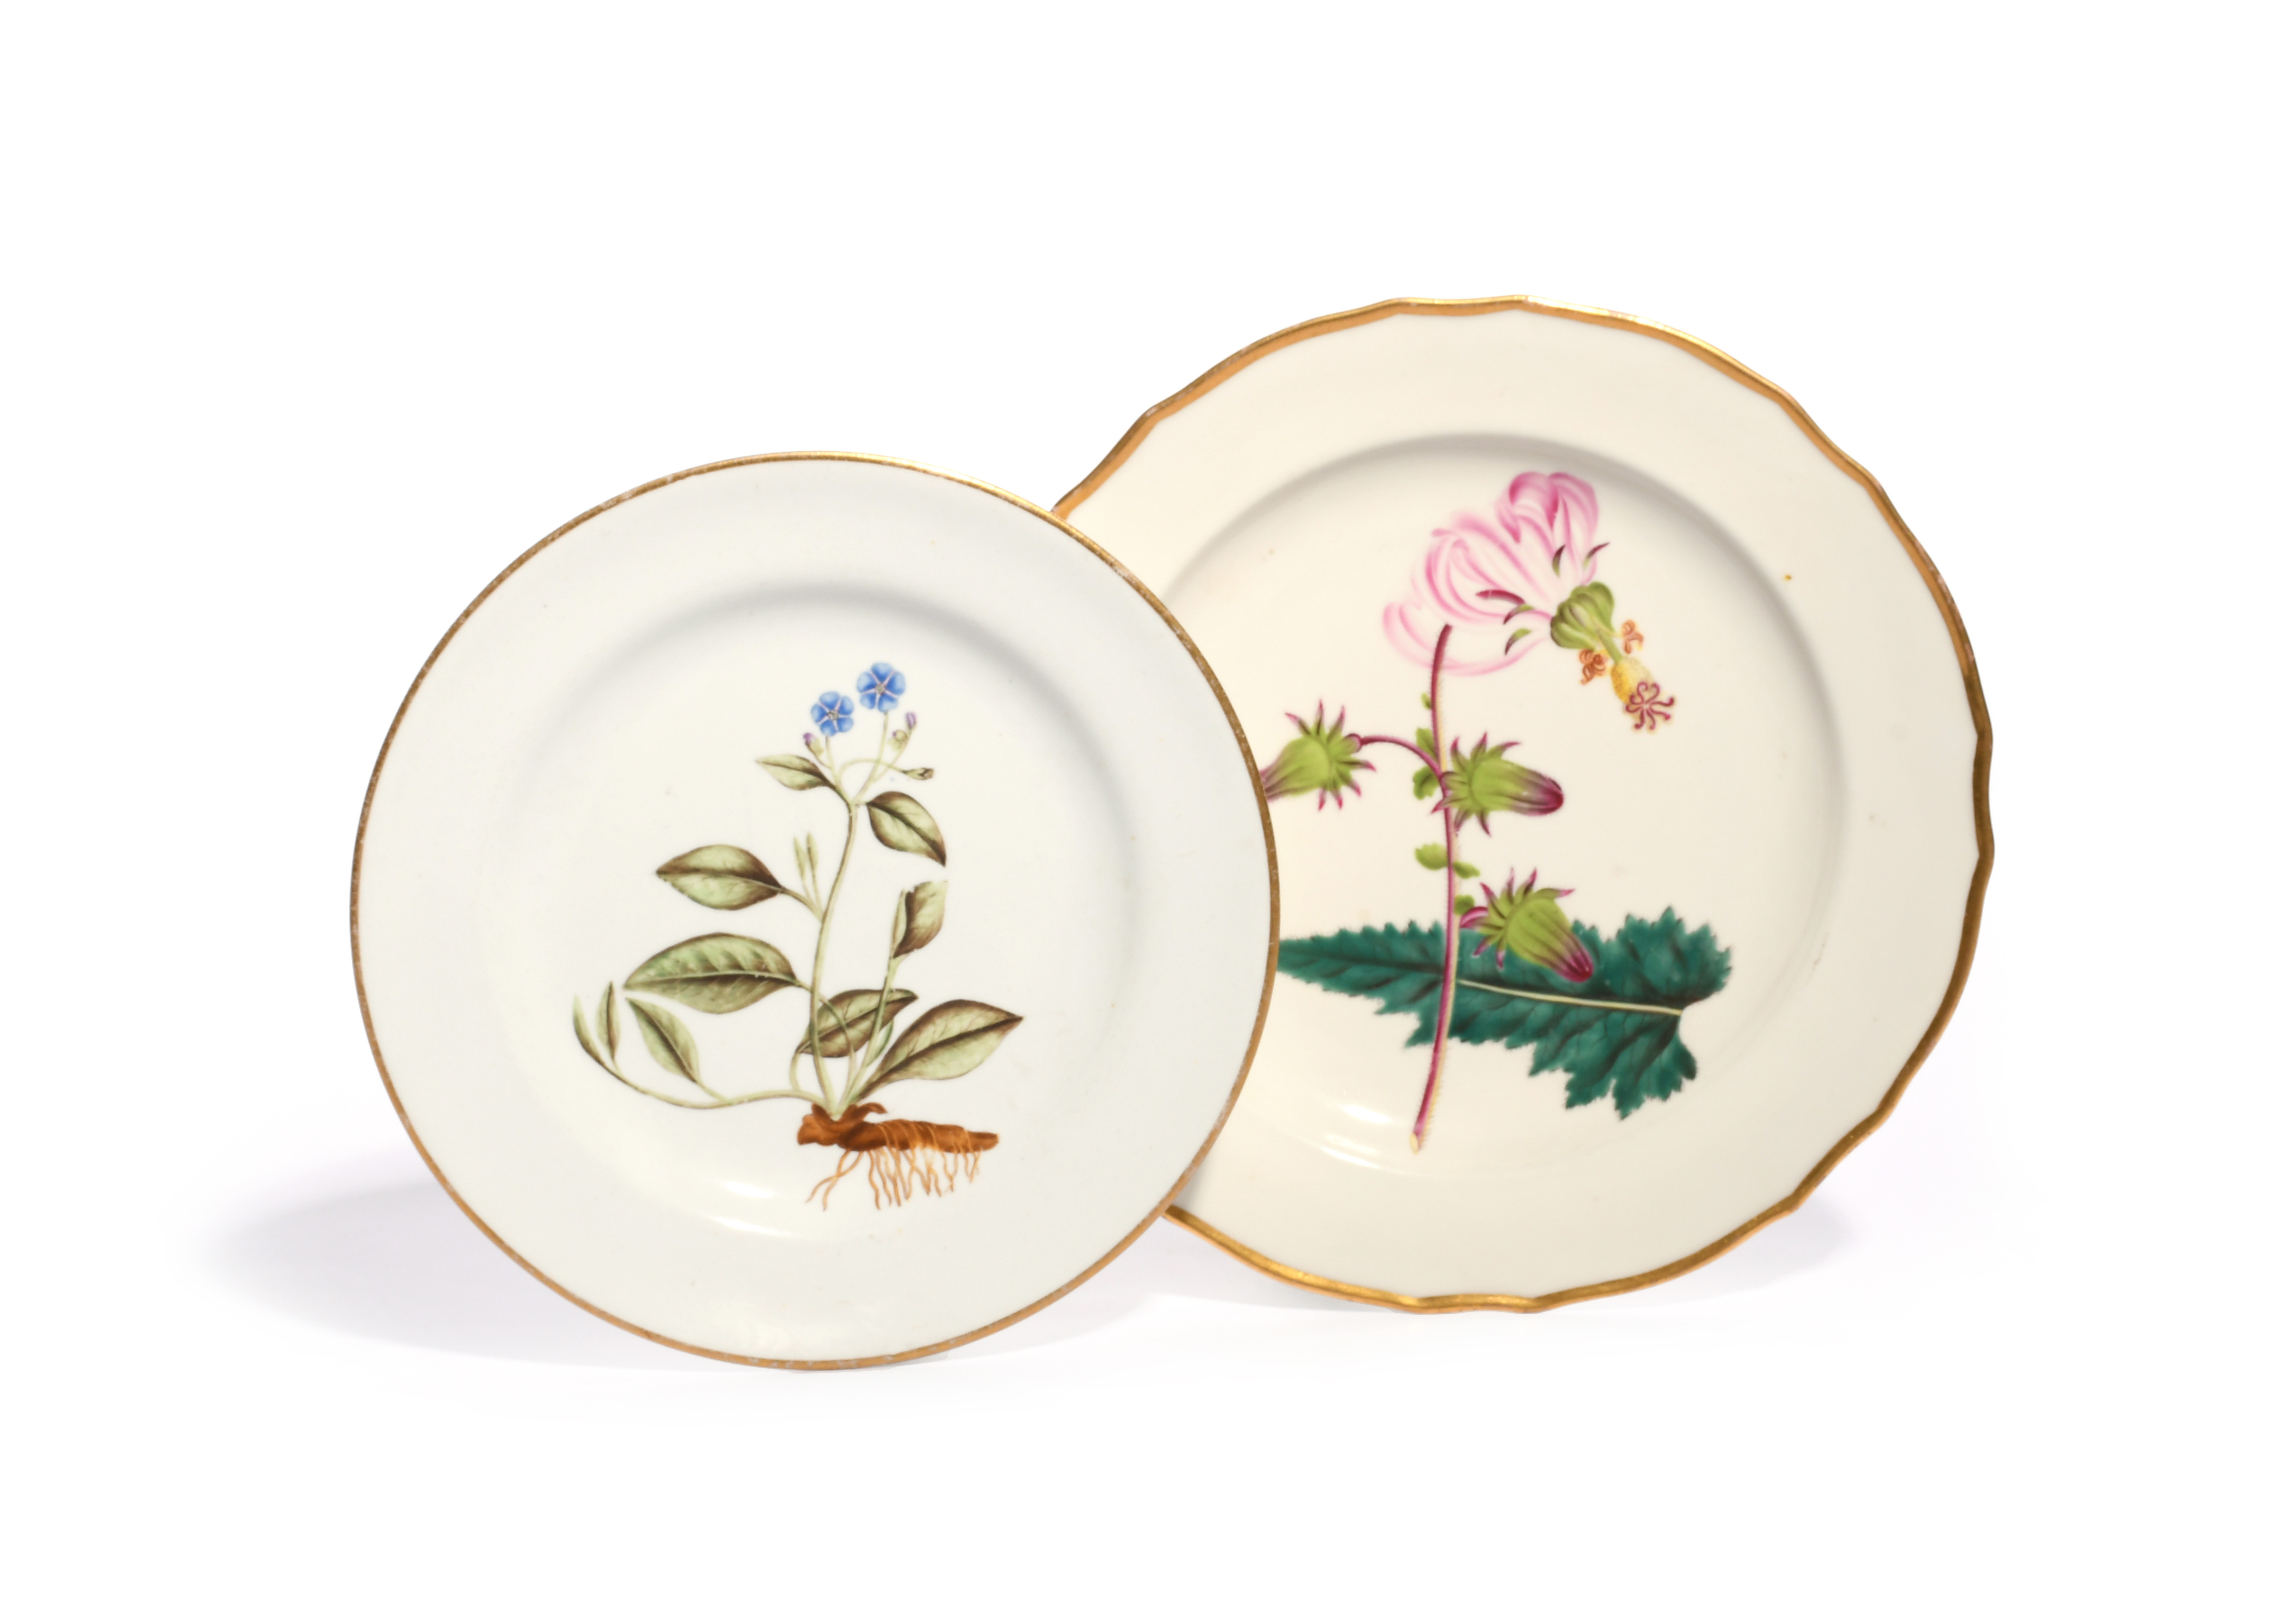 Two English porcelain botanical plates c.1790-1800, one Derby and painted with a specimen of